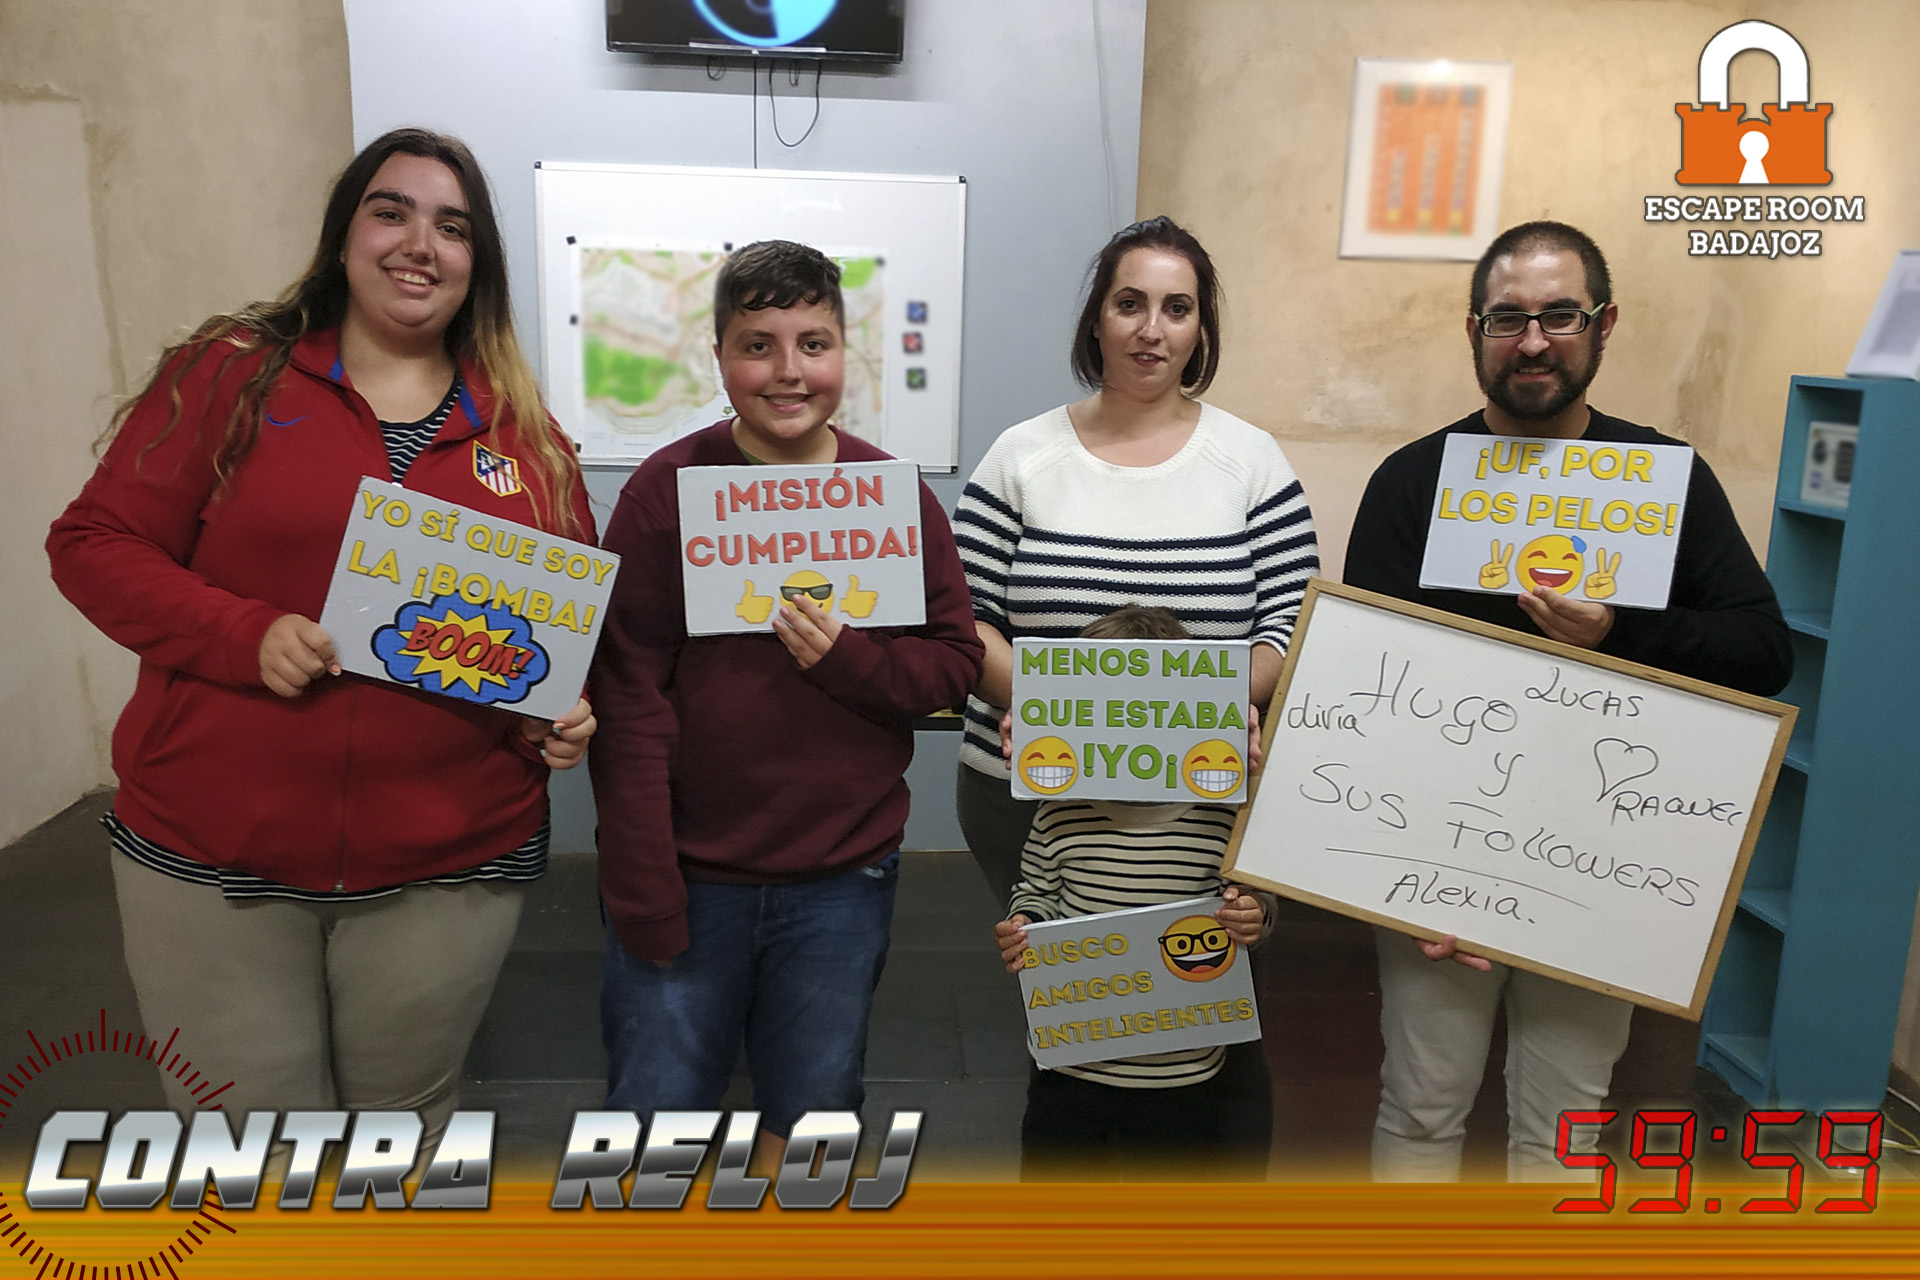 Equipo-Hugoysusfollowers-escape-room-badajoz-contrareloj